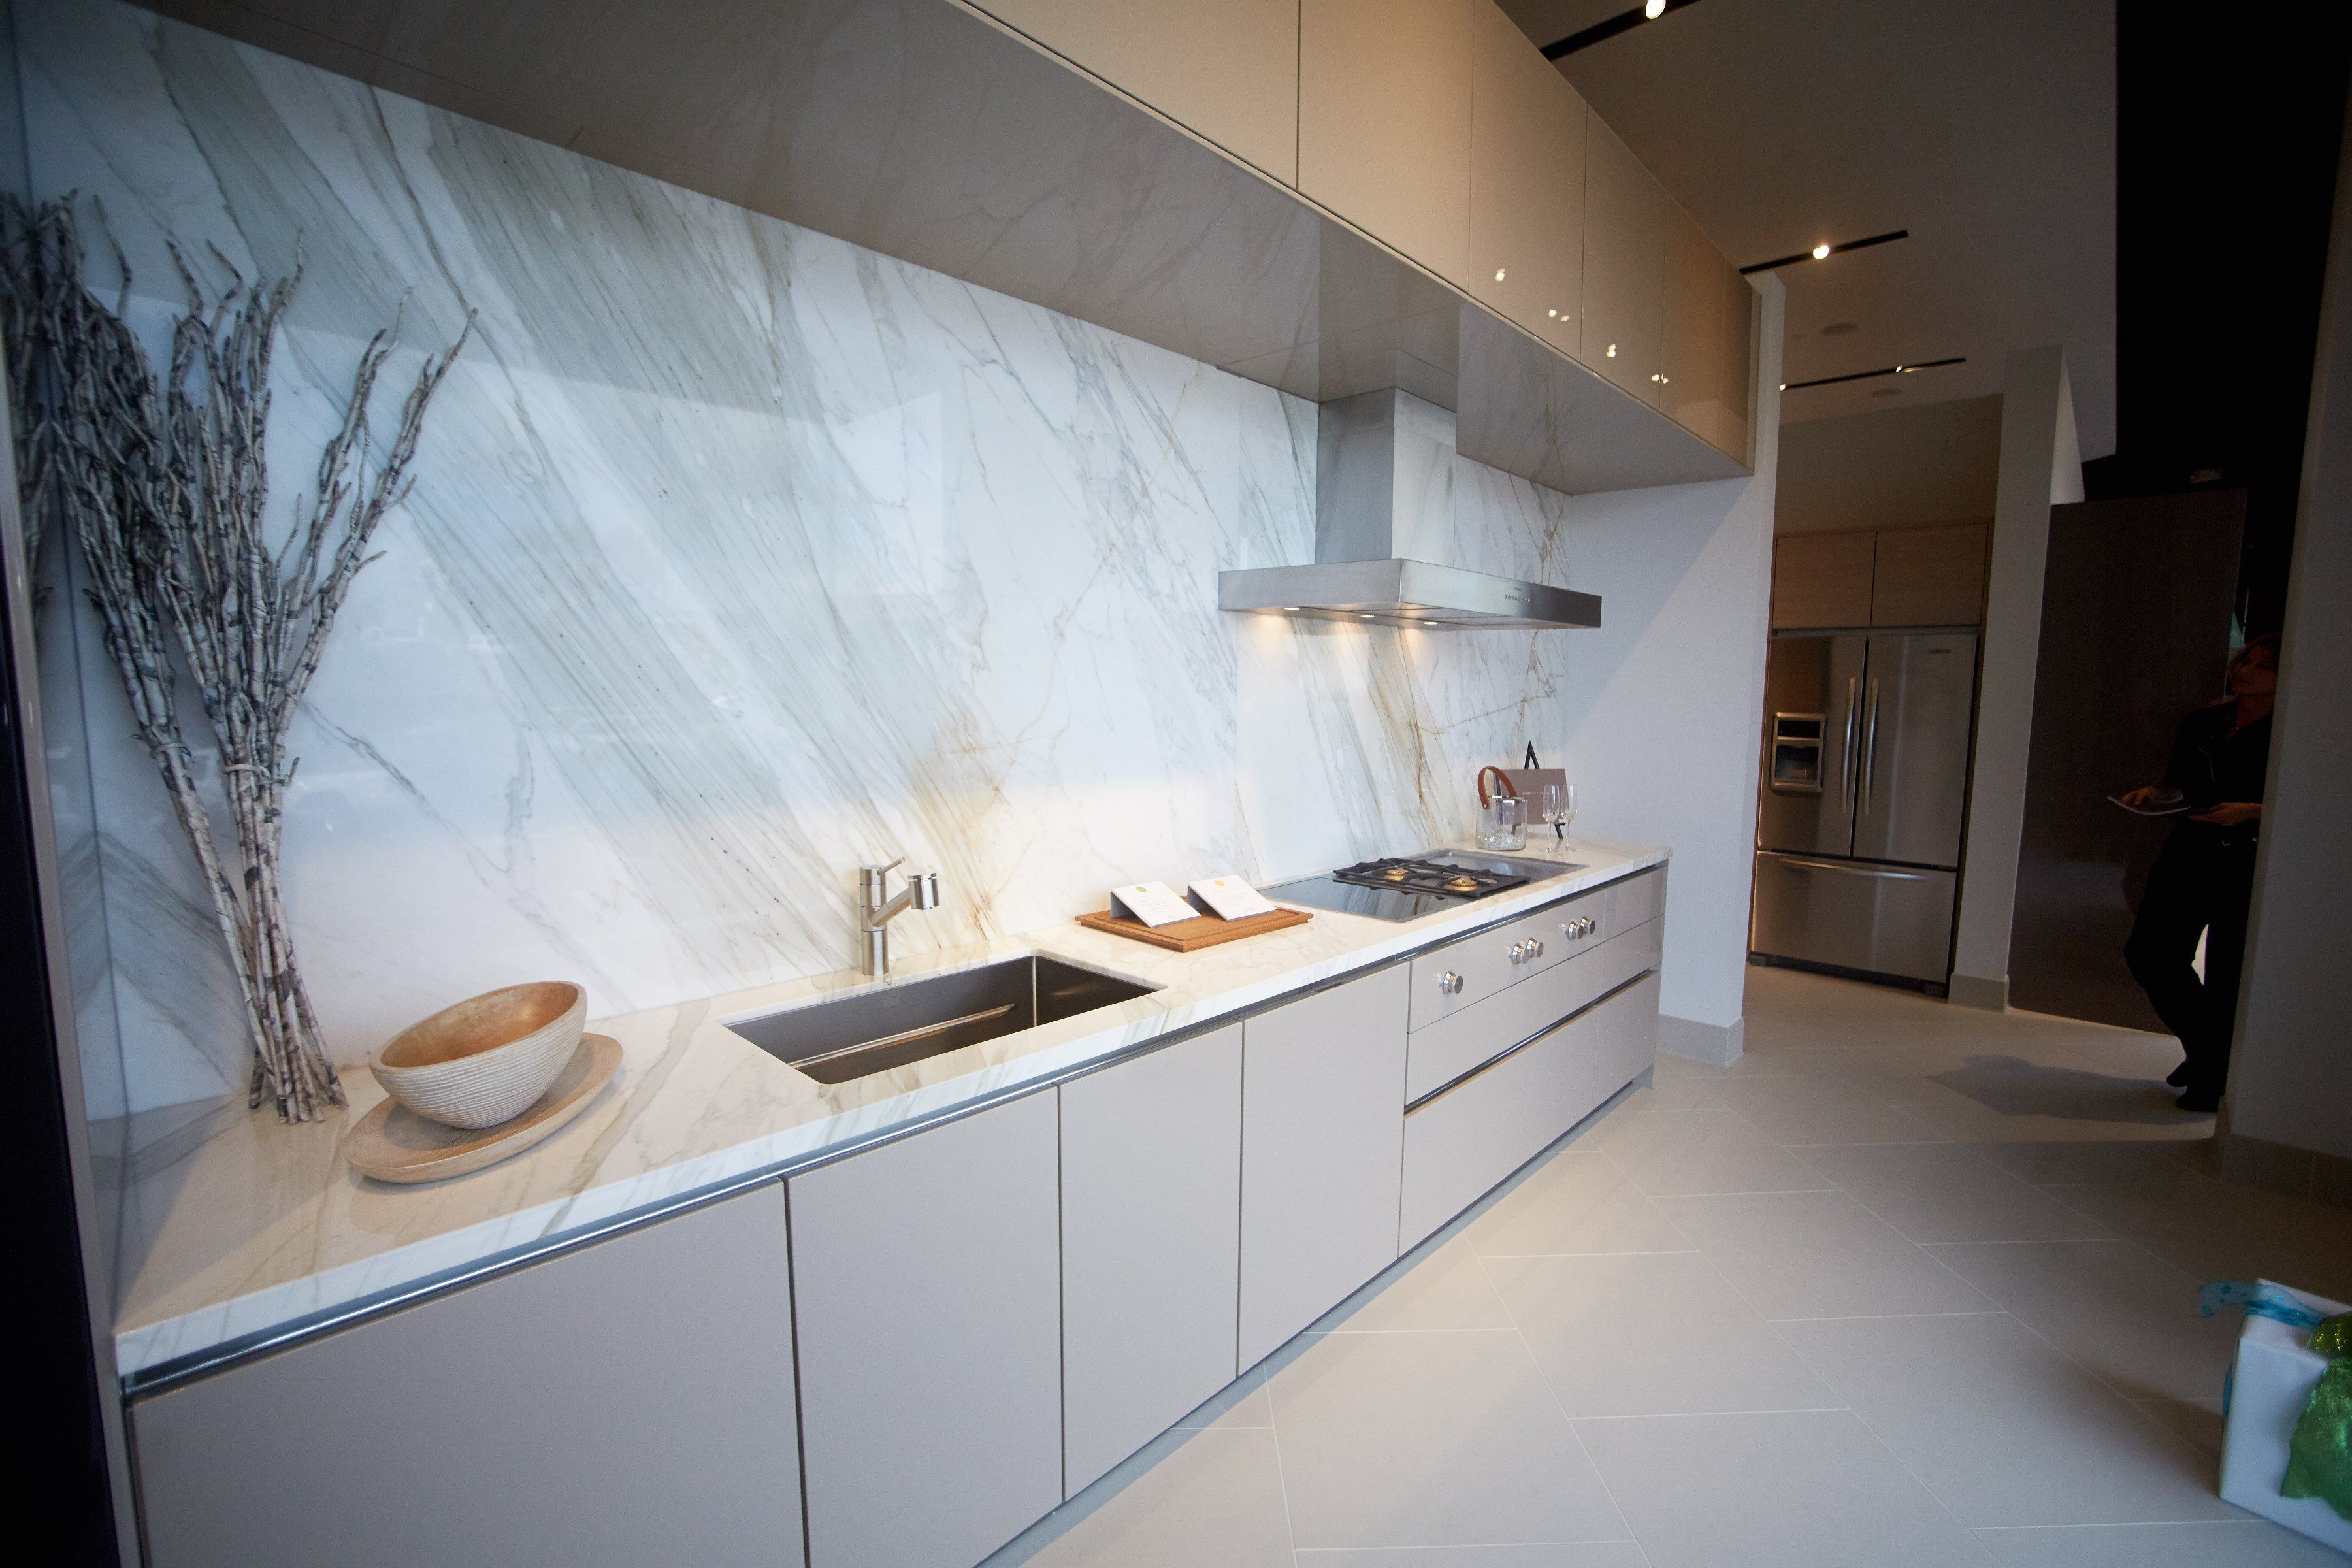 Kitchen Design   PIRCH UTC · Kitchen DecorKitchen DesignsSan Diego Arquitetura